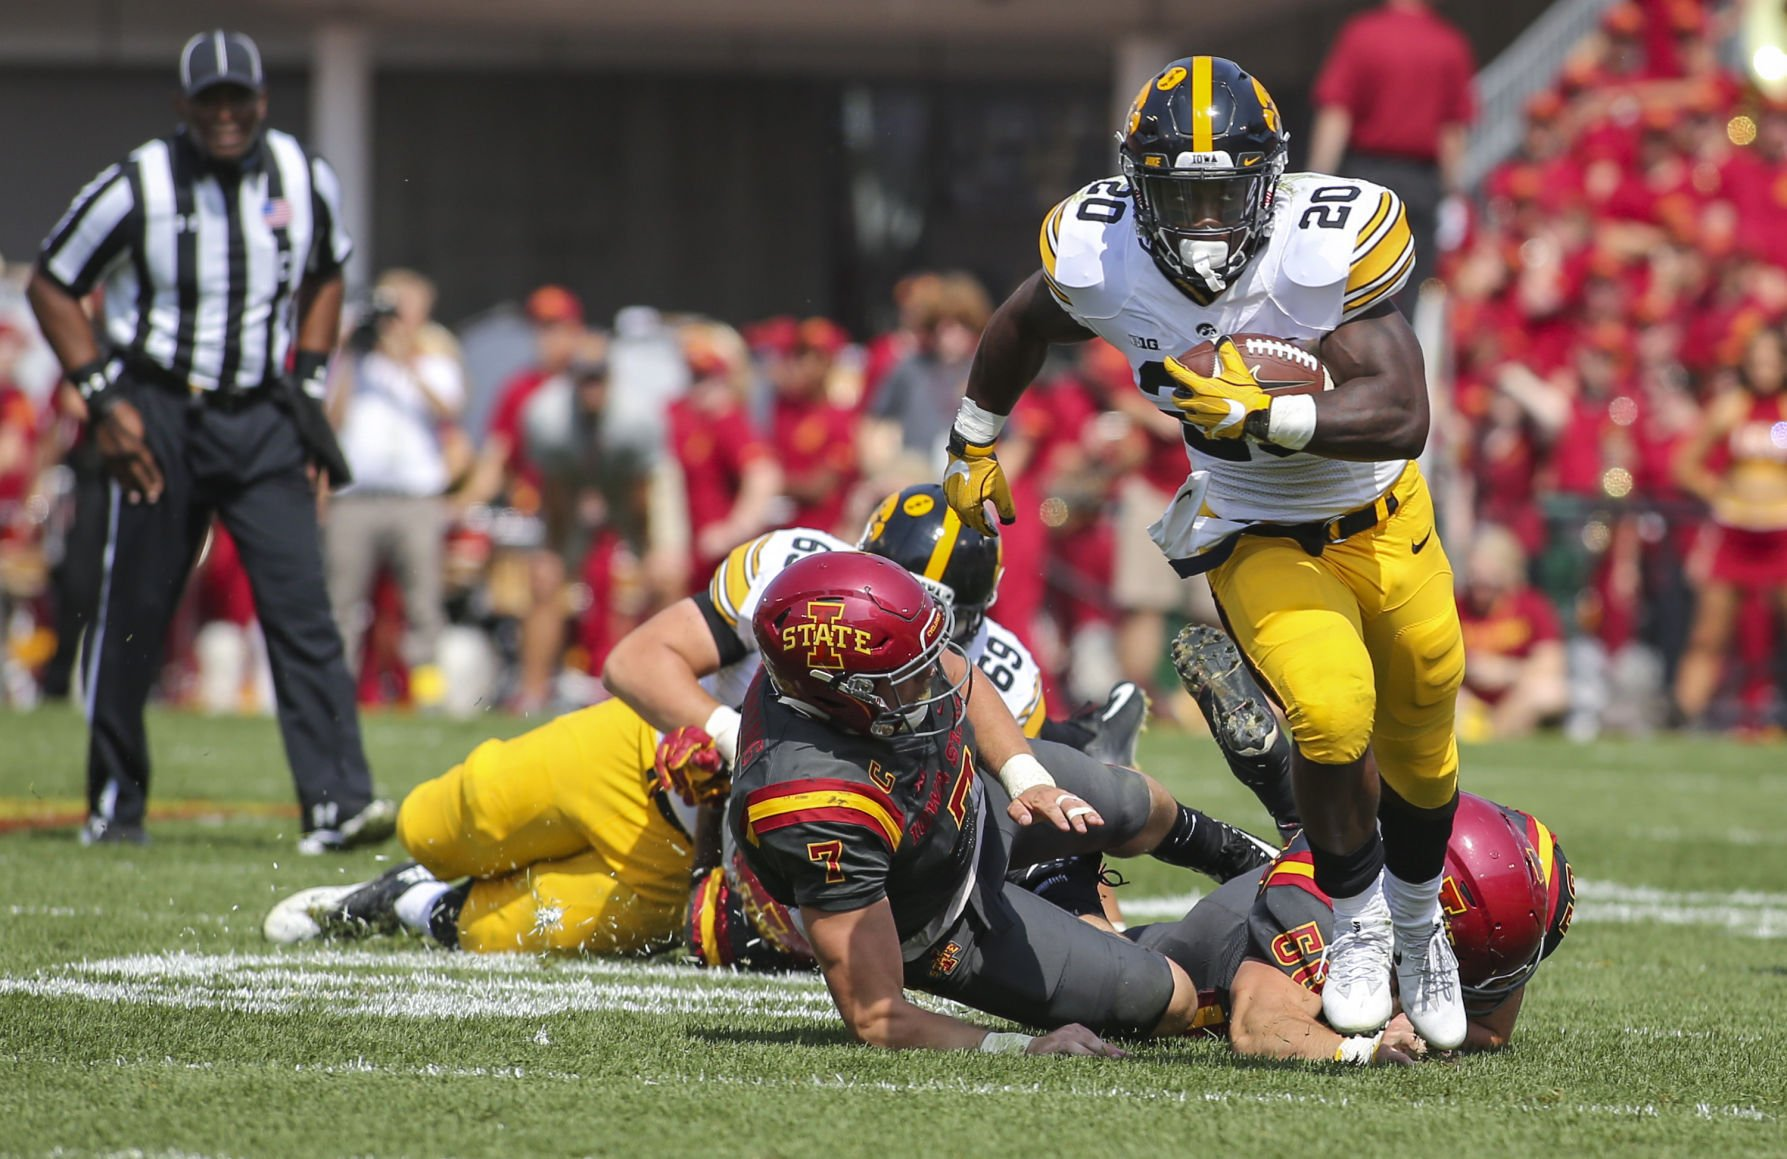 Young playmakers emerge in Iowa's 31-14 win over North Texas